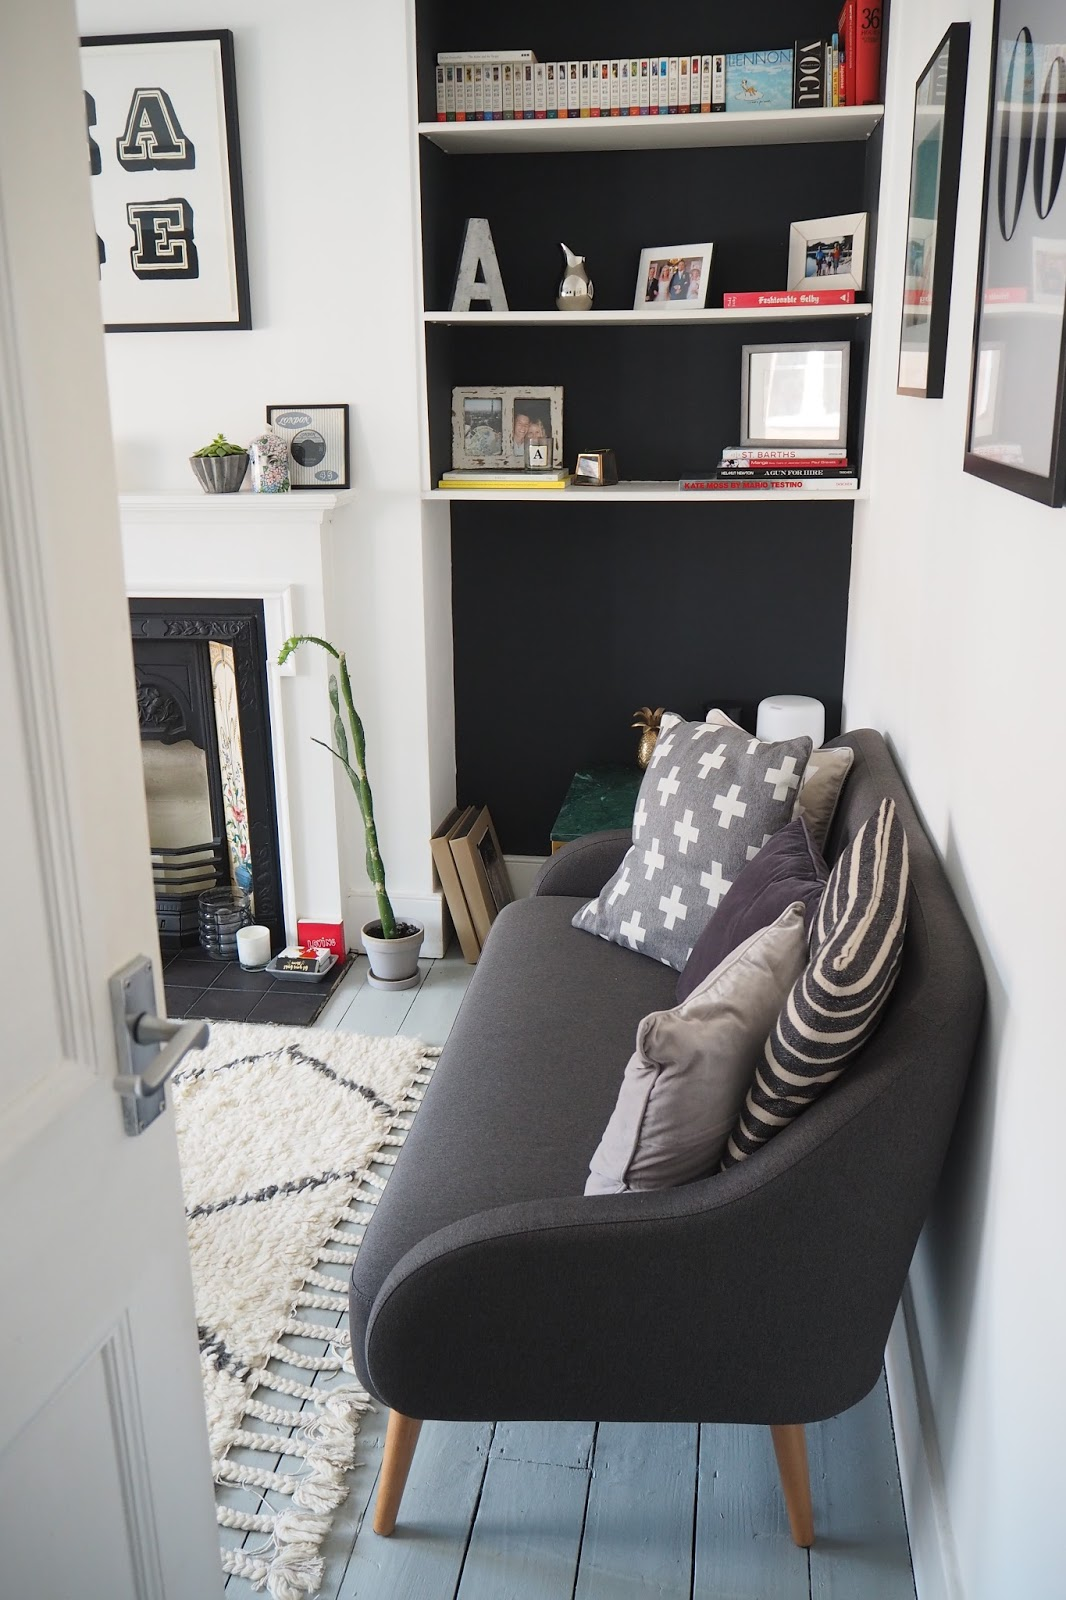 Habitat Sofa 2nd Hand Interiors Update Living Room The Frugality Blog